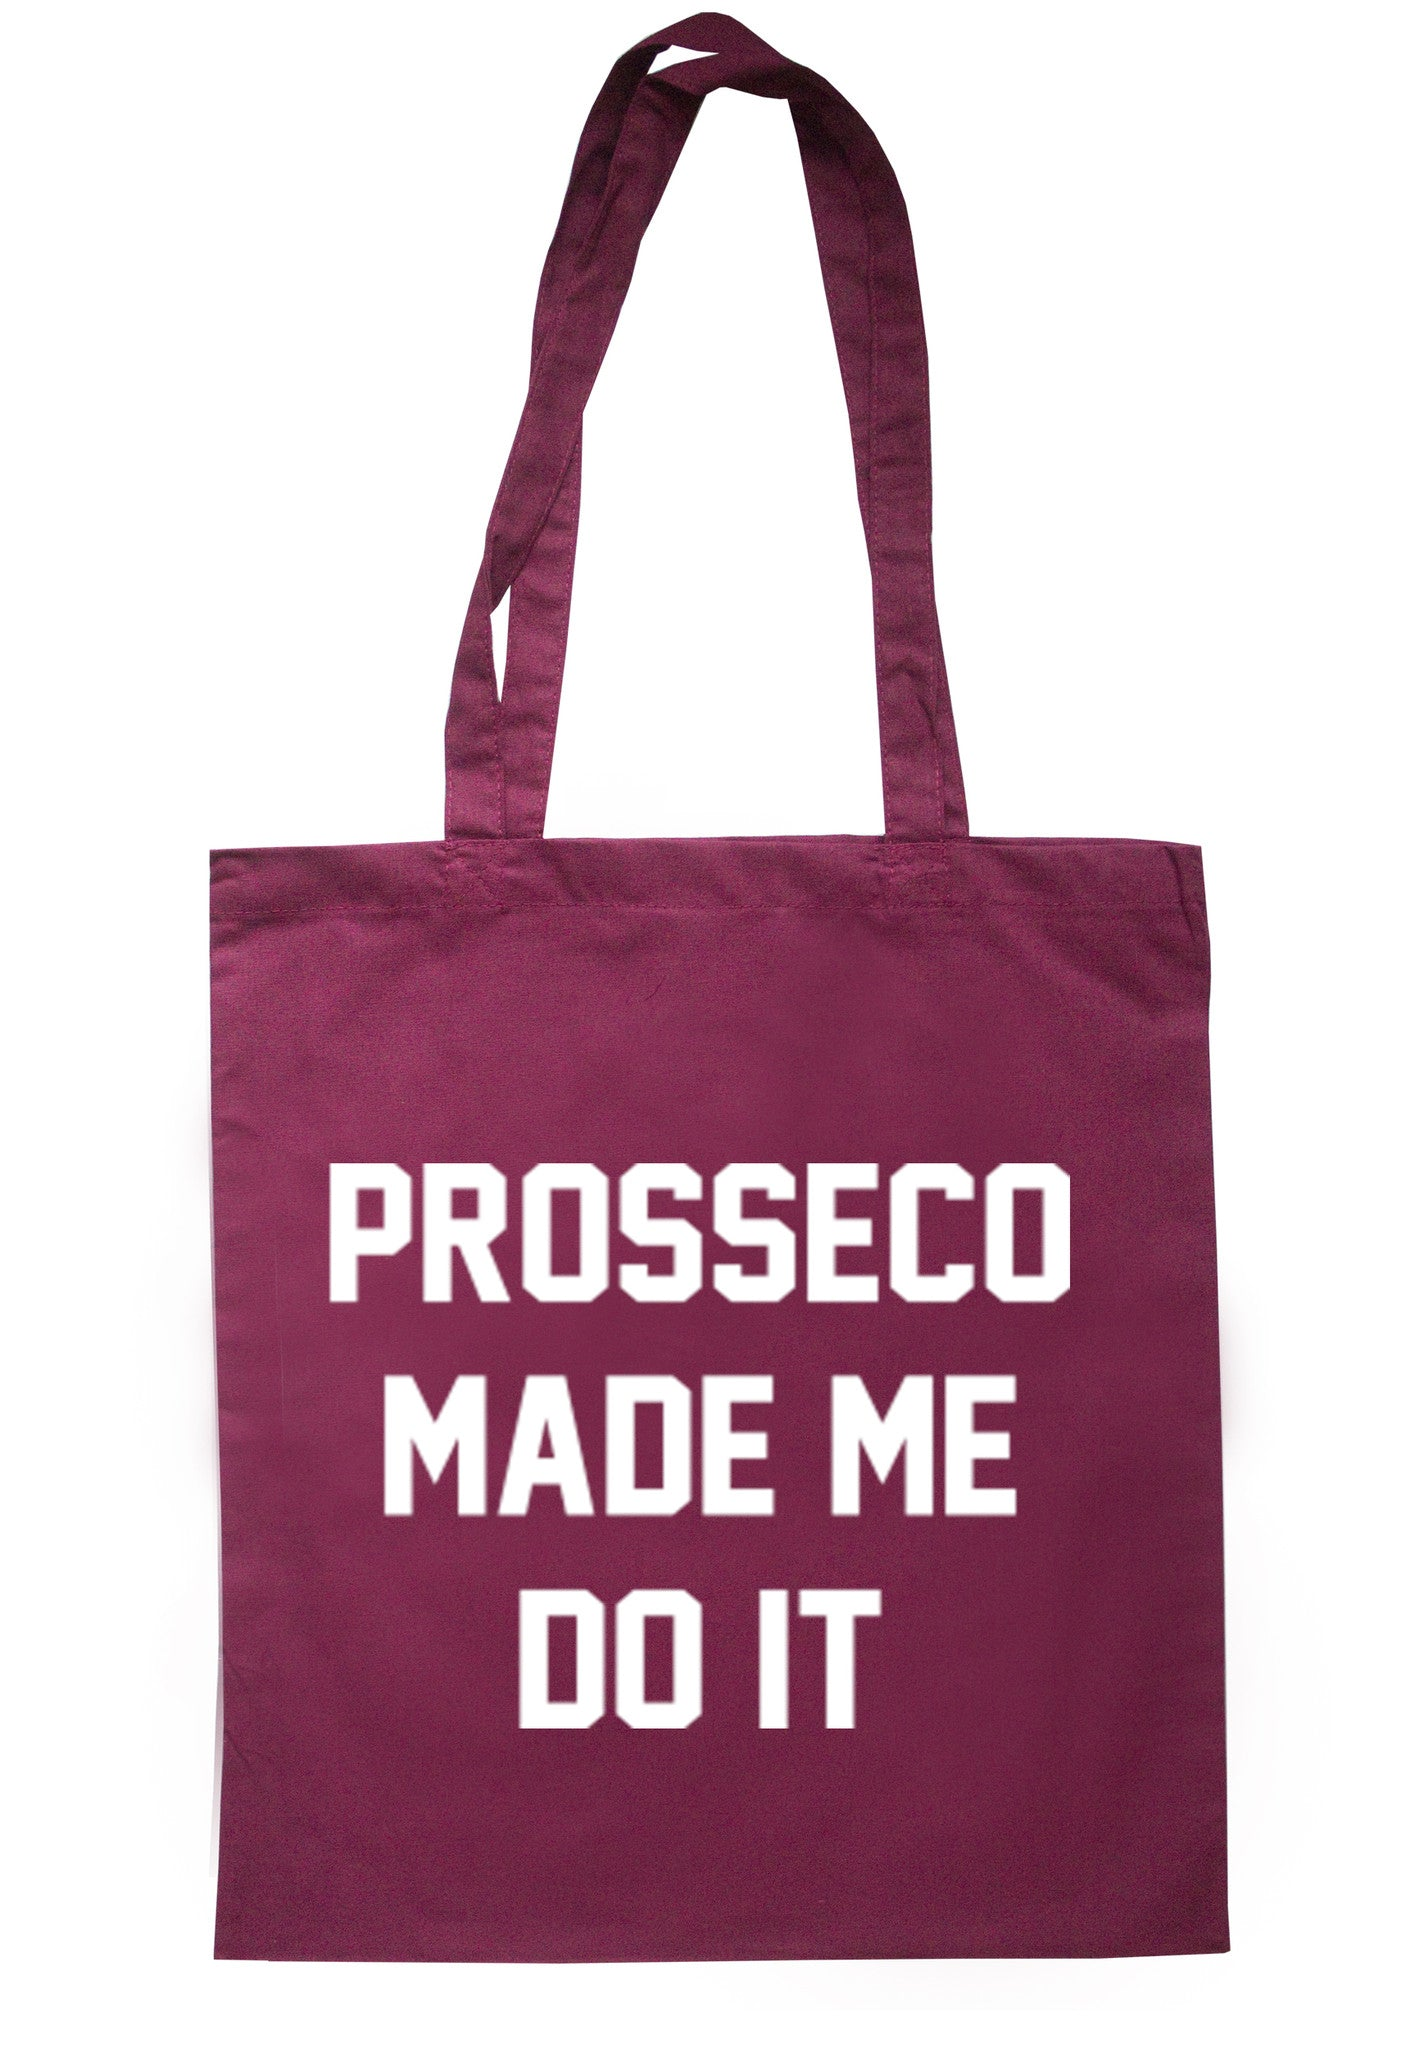 Prosseco Made Me Do It Tote Bag TB0013 - Illustrated Identity Ltd.